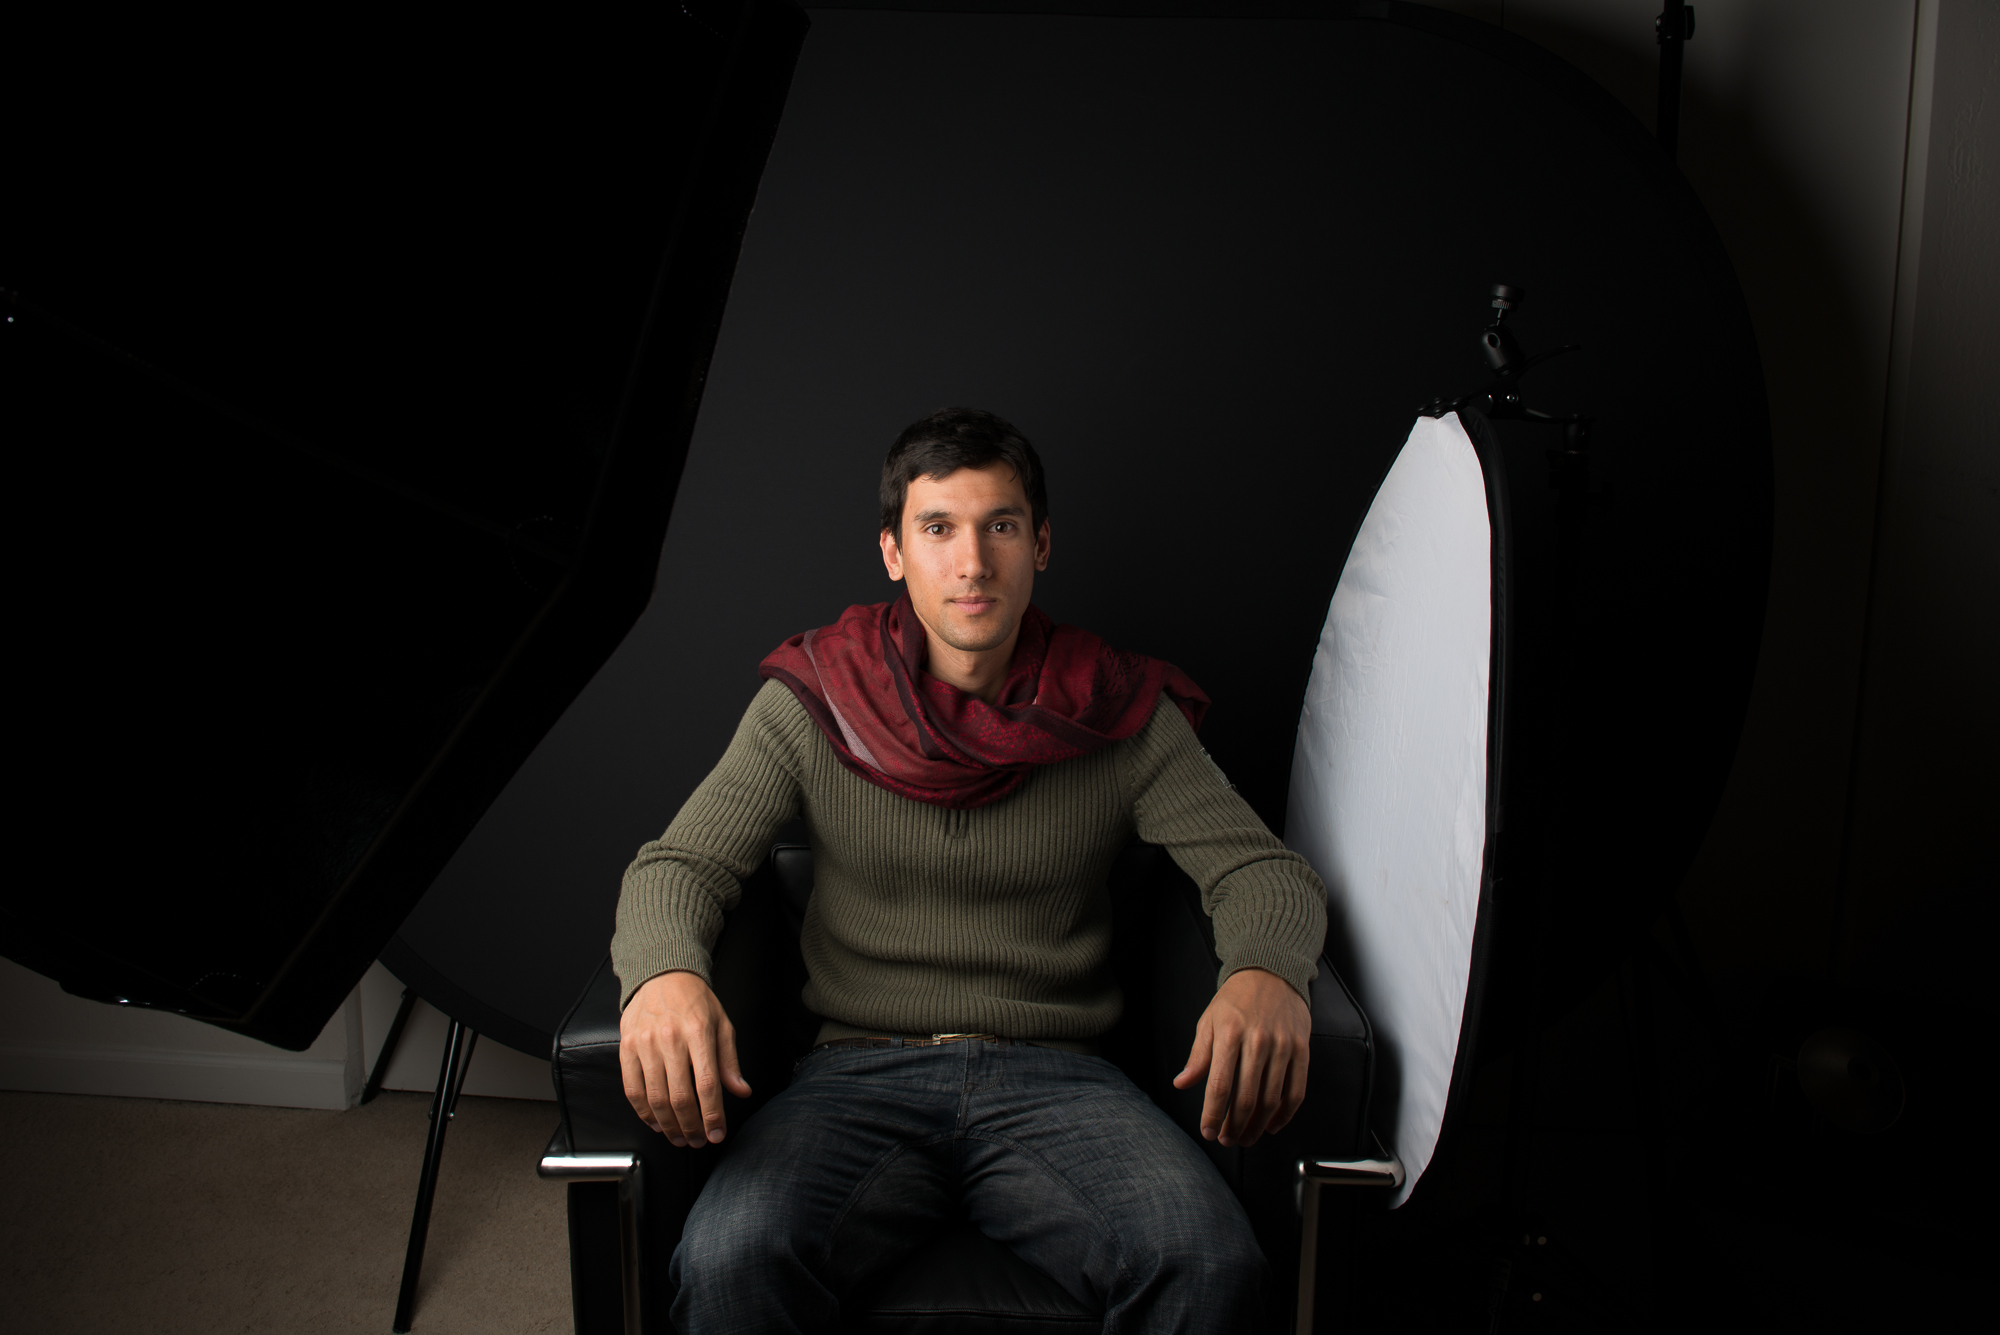 My model, Andrew, in my home studio with 1 monolight in an Elinchrom Octabox and a reflector nearby.